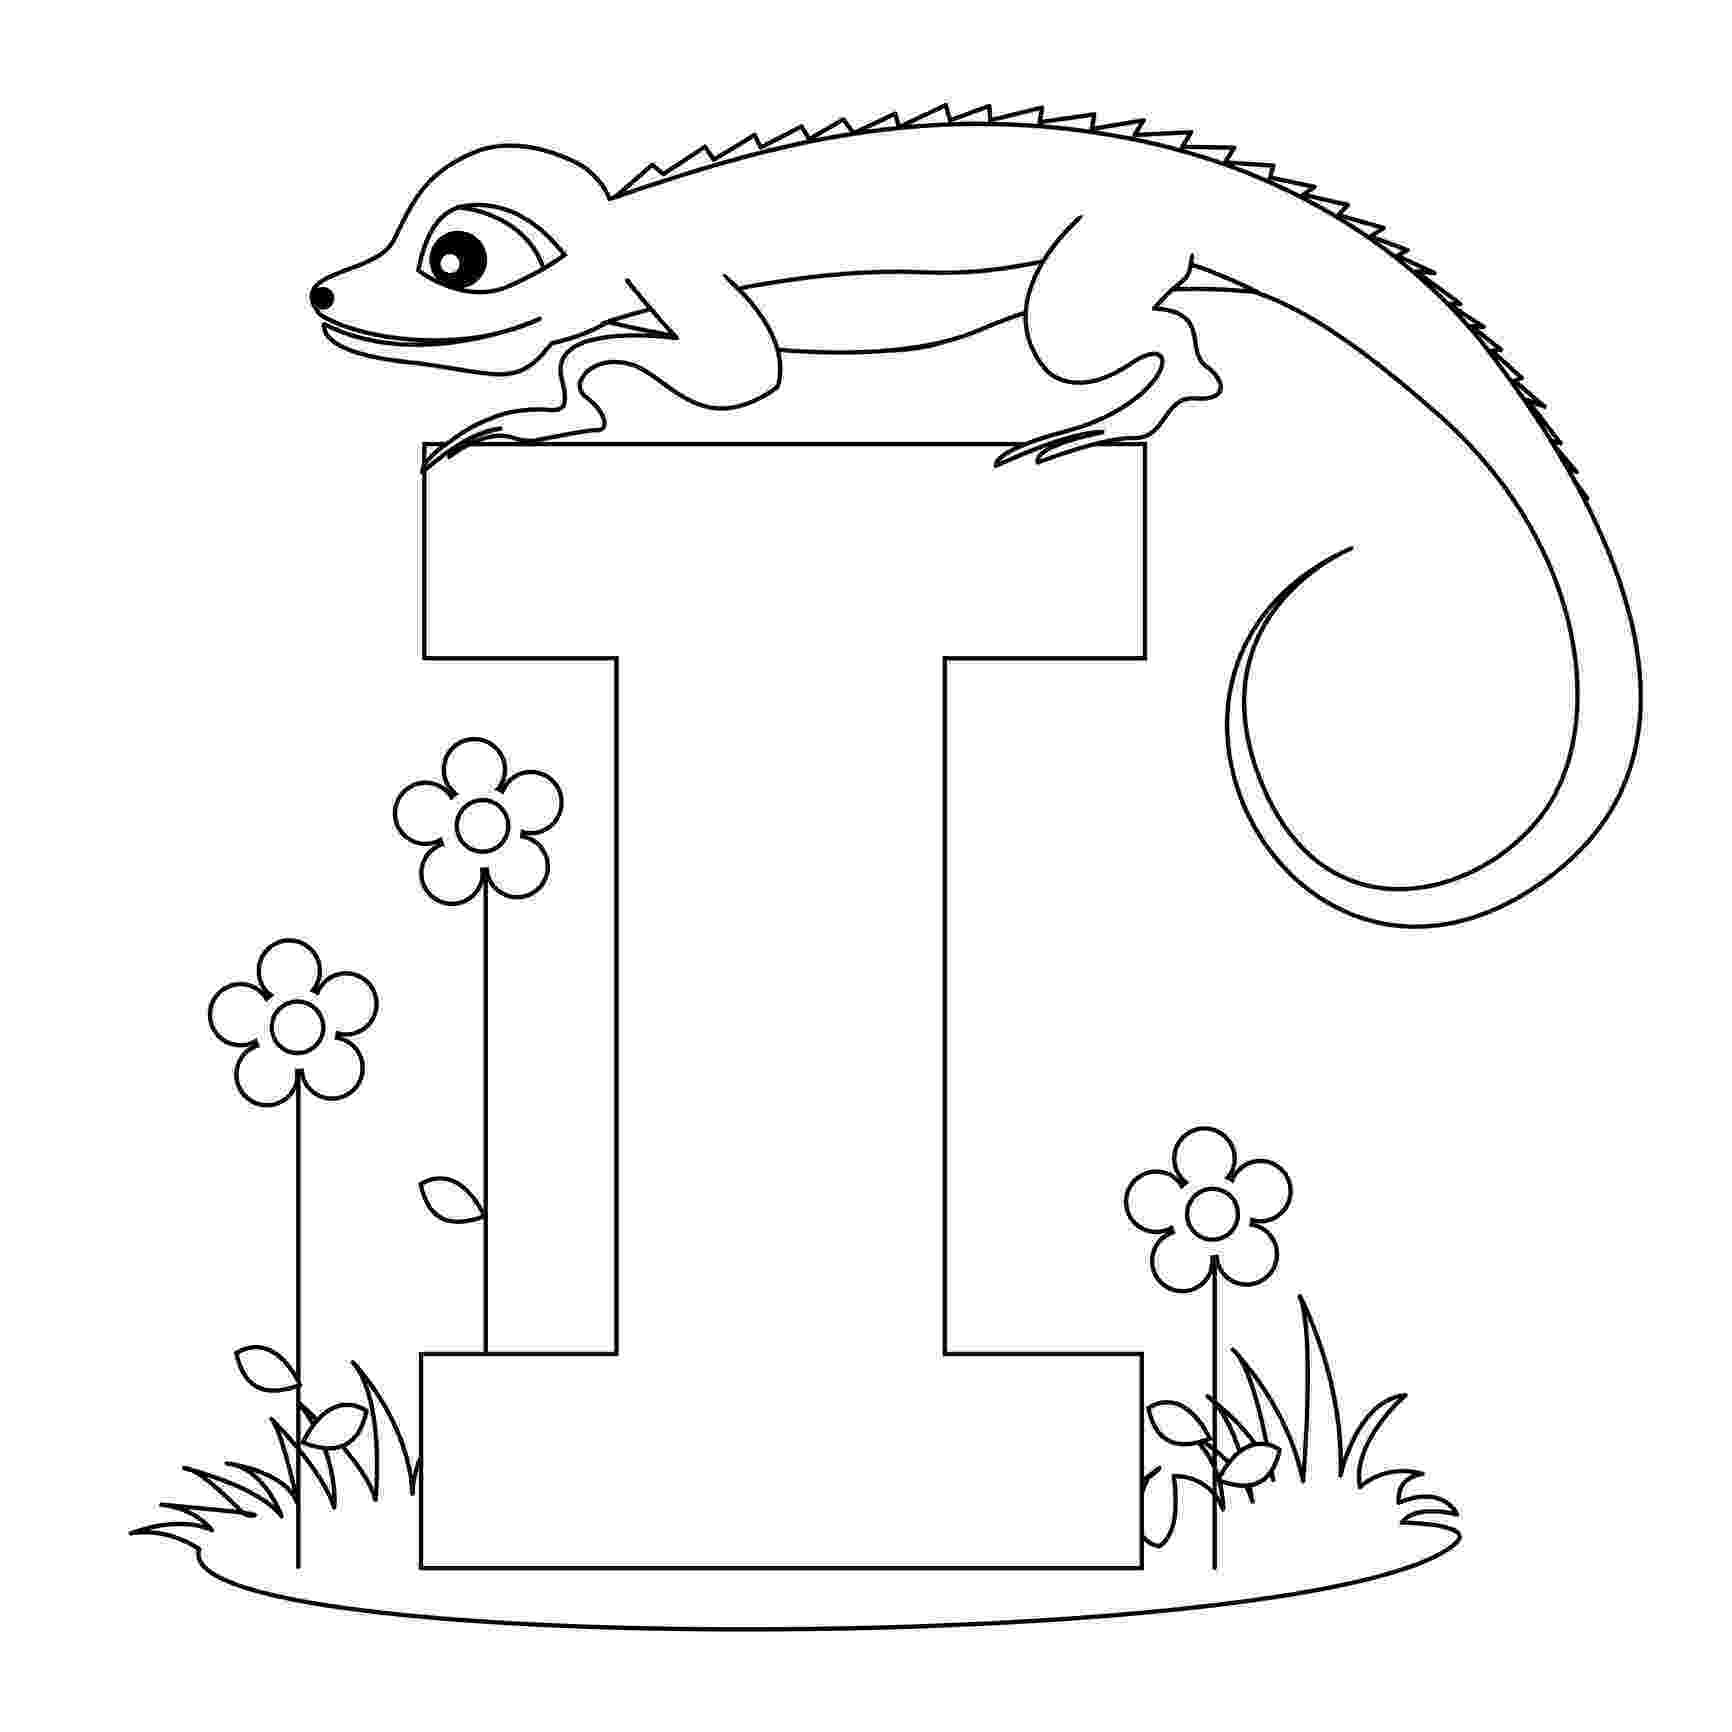 alphabet coloring worksheets letter f coloring pages to download and print for free worksheets alphabet coloring